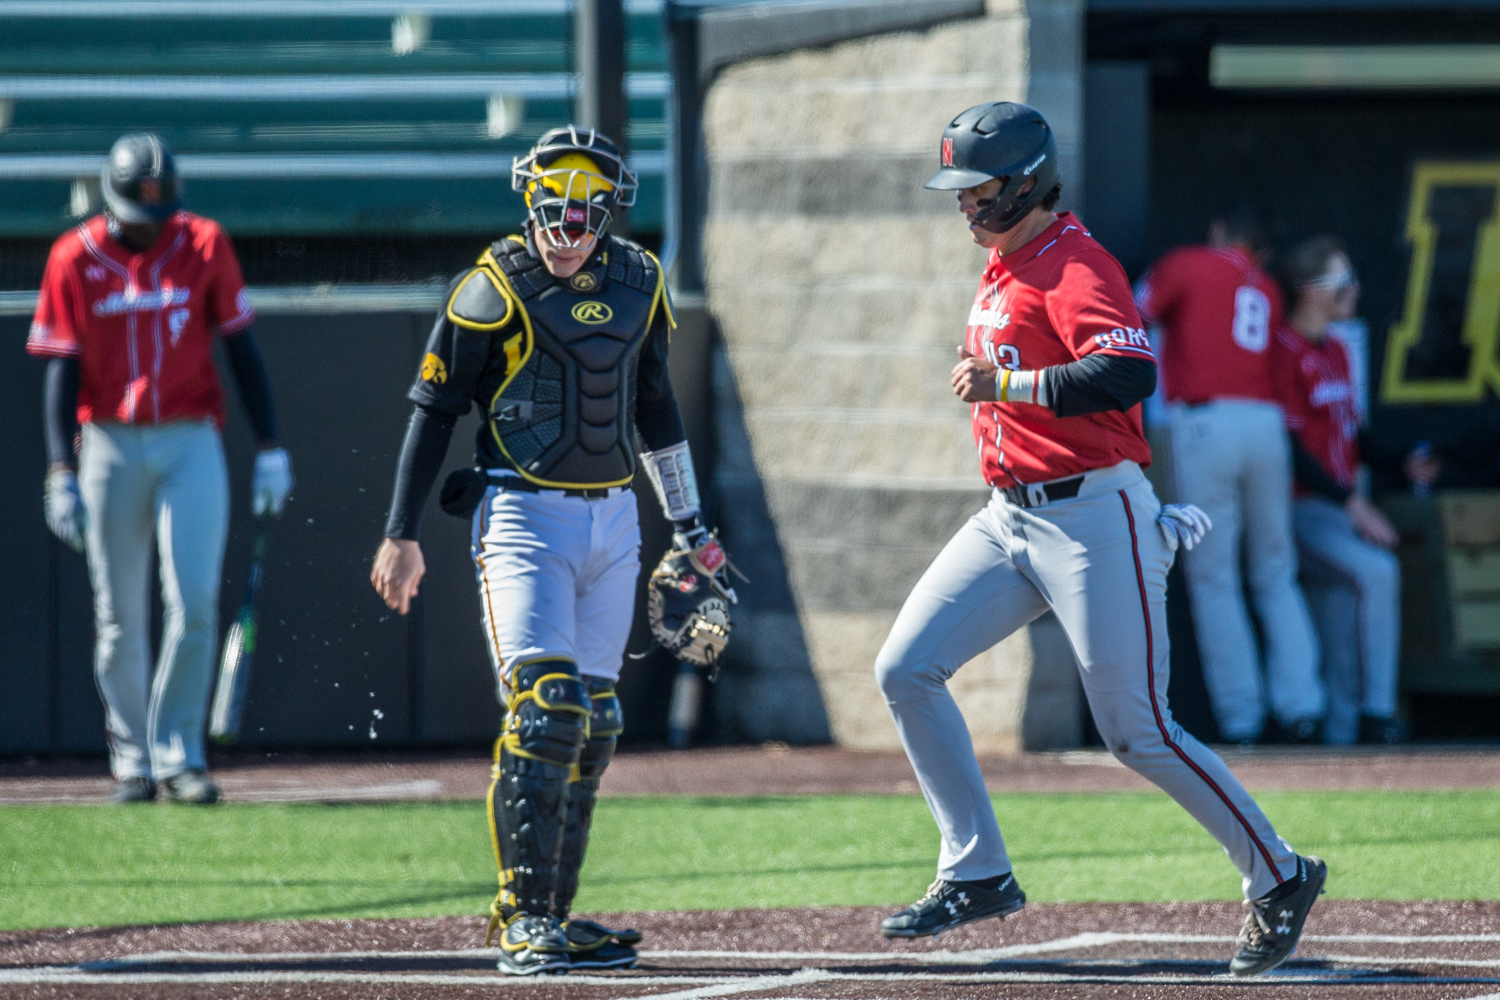 CSUN+infielder+Wesley+Ghan-Gibson+scores+during+the+first+game+of+a+baseball+doubleheader+between+Iowa+and+Cal-State+Northridge+at+Duane+Banks+Field+on+Sunday%2C+March+17%2C+2019.+The+Hawkeyes+defeated+the+Matadors%2C+5-4.